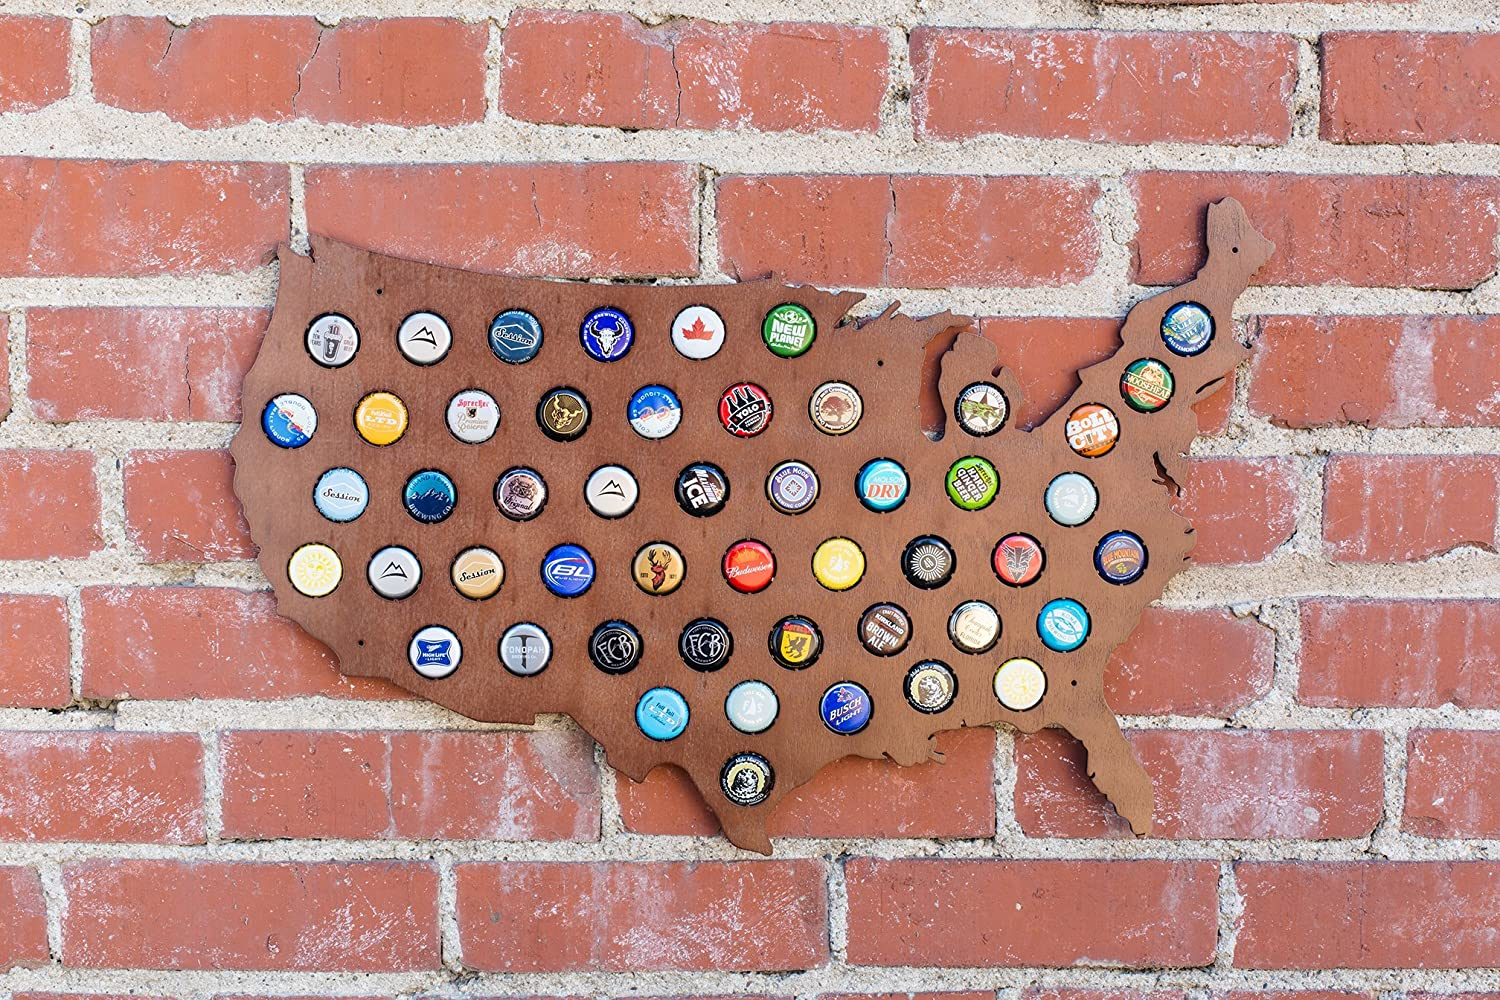 Amazoncom USA Beer Cap Map With Dark Stain Craft Beer Cap - Us beer cap map